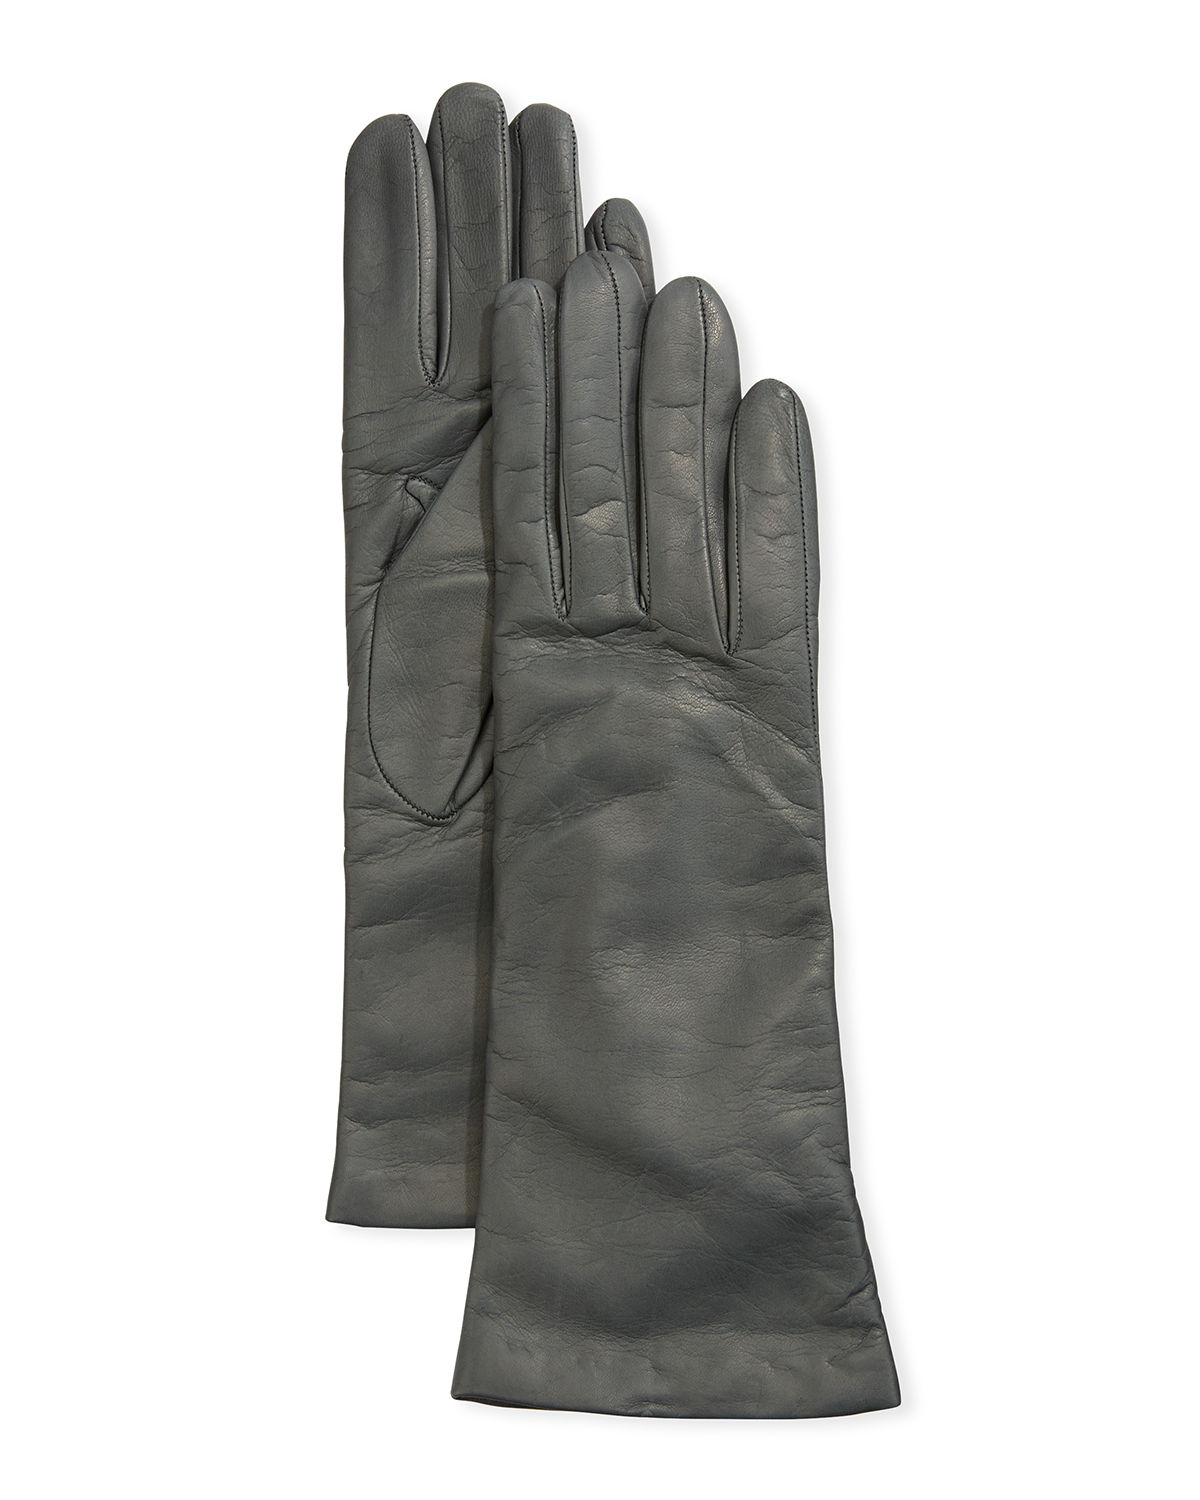 Portolano Gloves FOUR-BUTTON LEATHER GLOVES